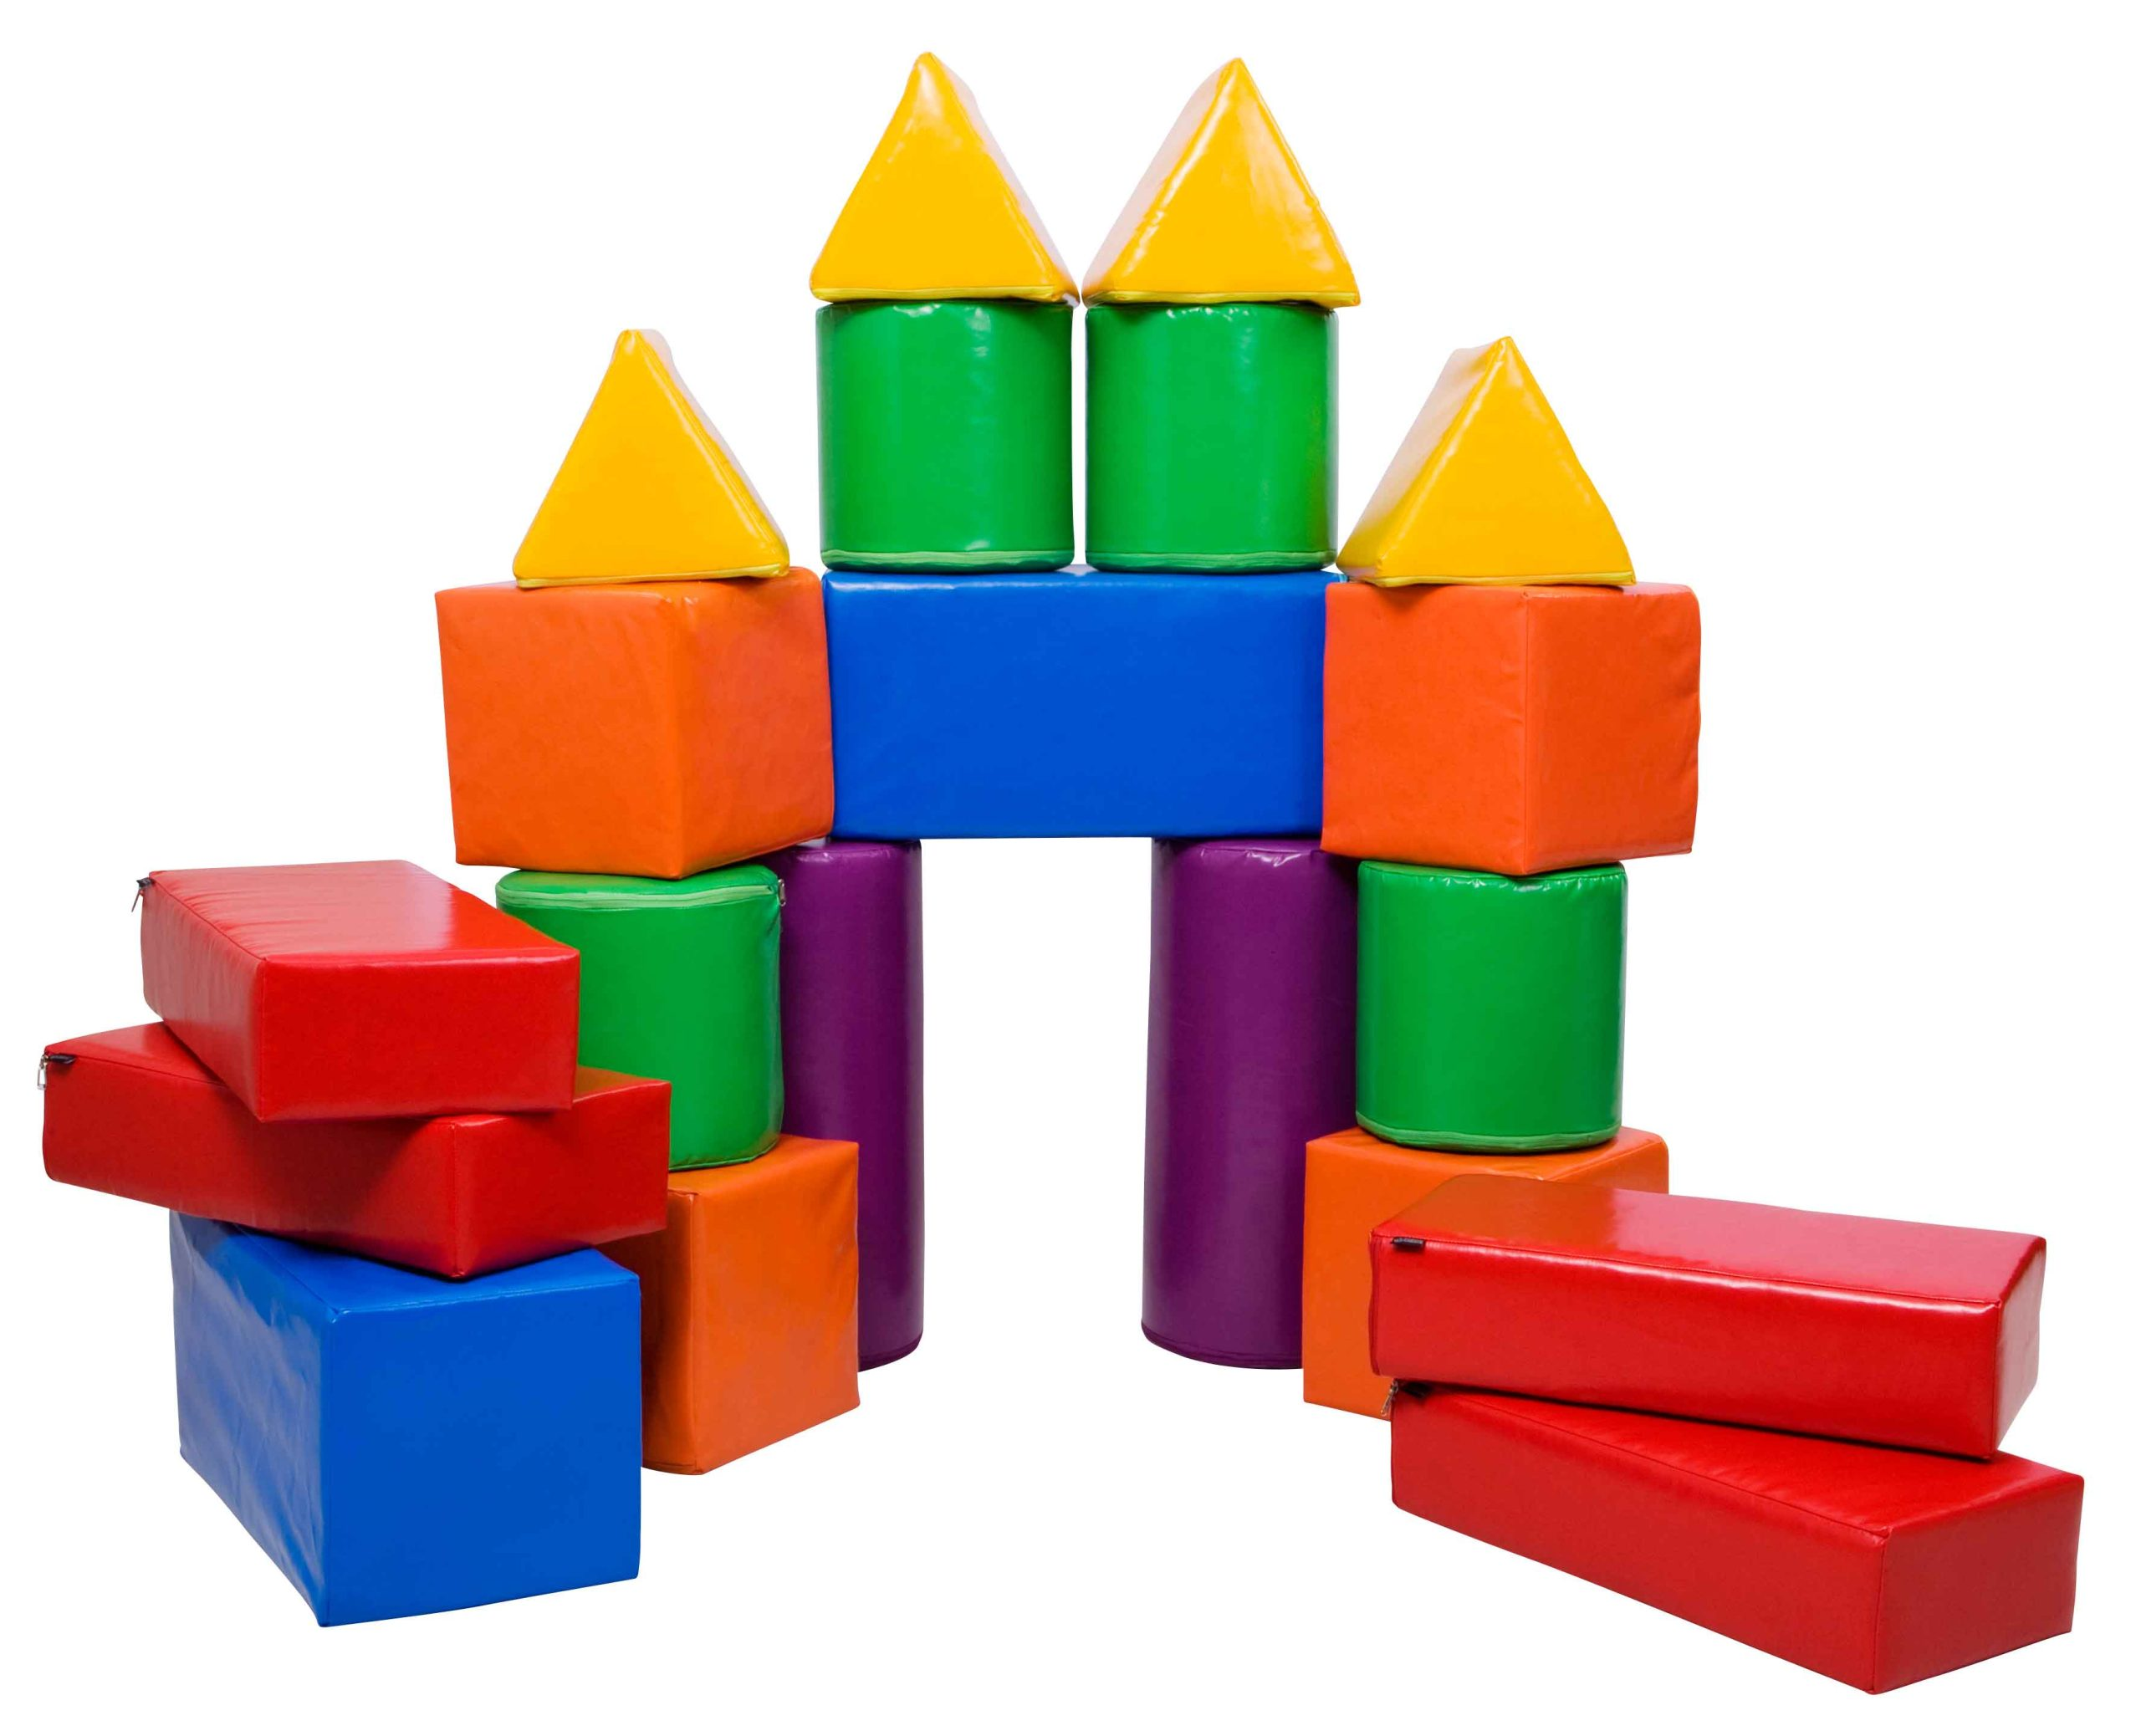 Construct and use legos